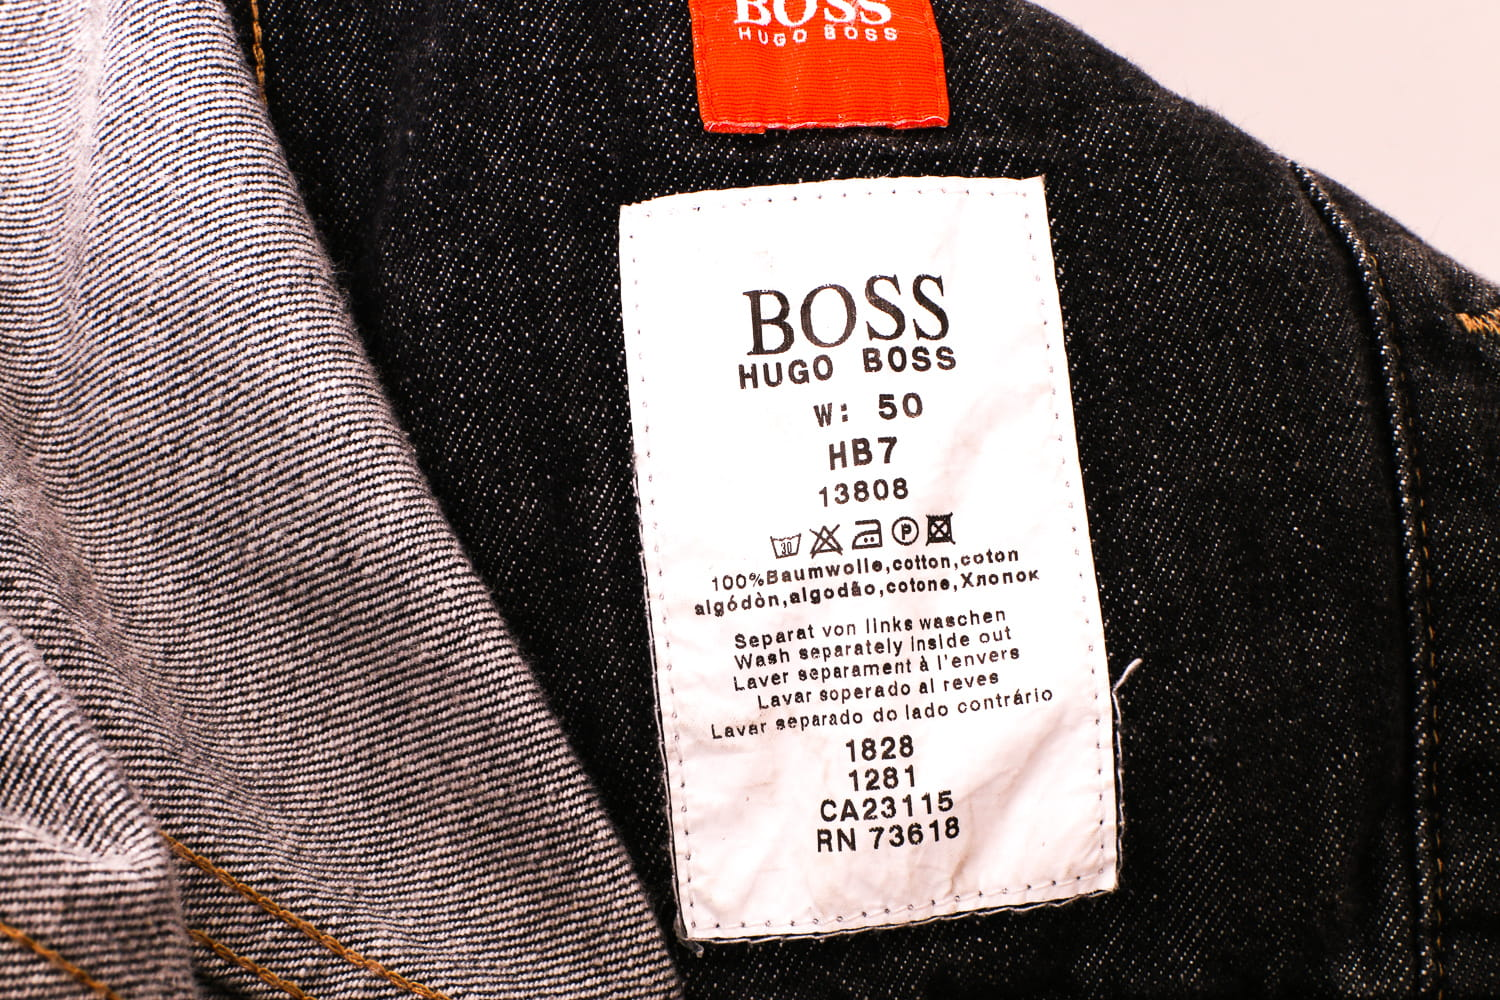 hugo boss ca23115 jacket